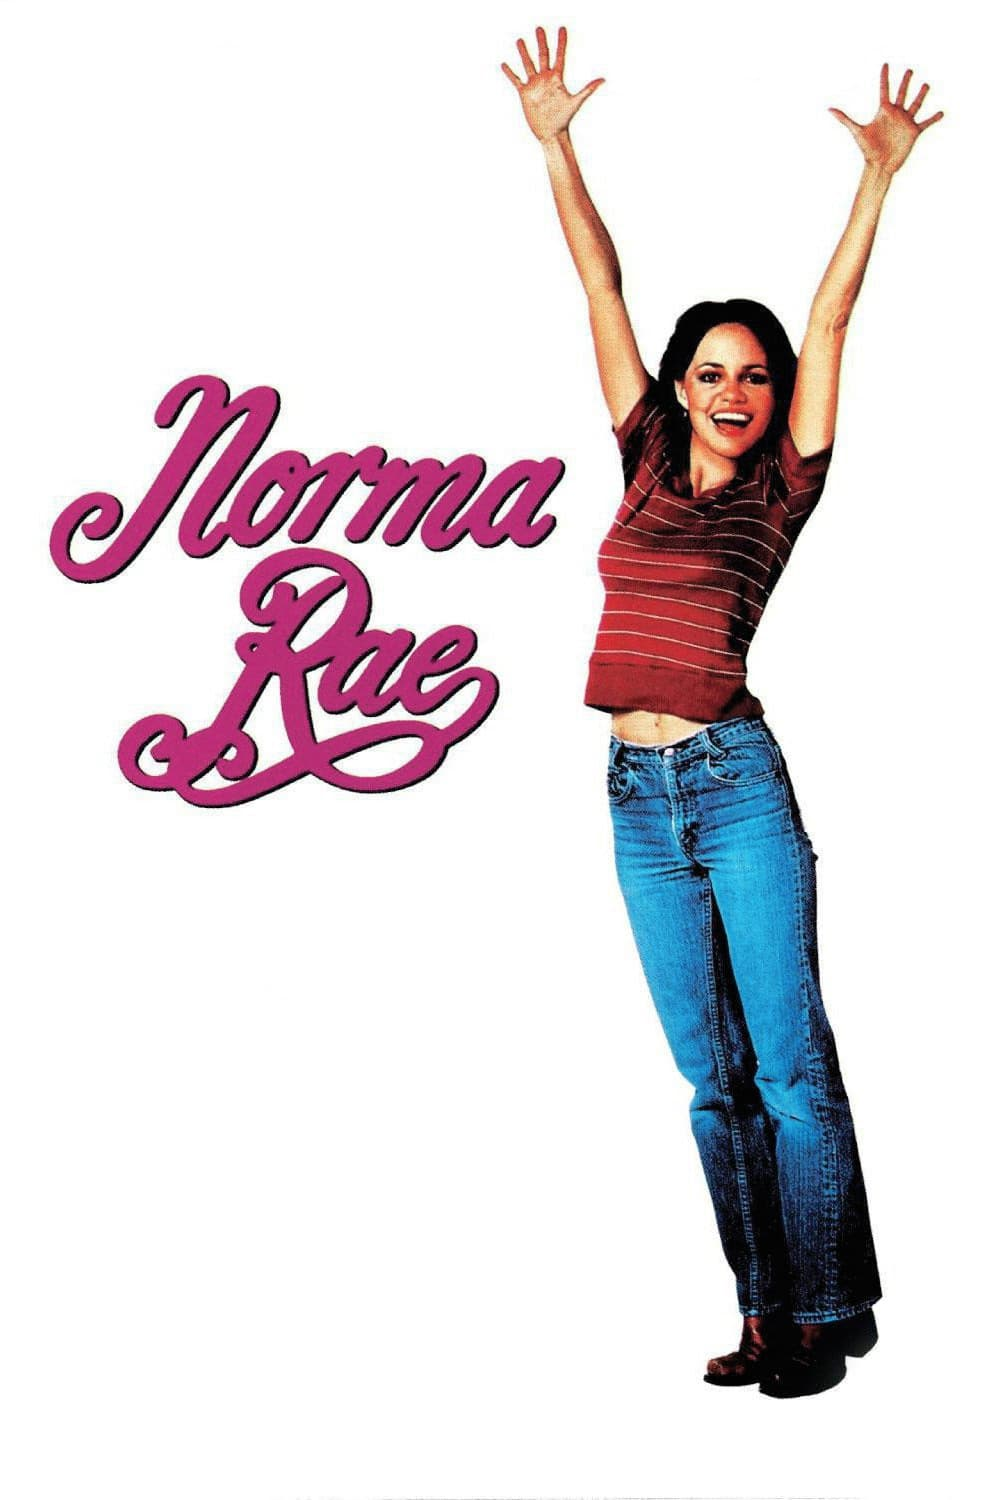 an analysis of the qualities of norma in the movie norma rae